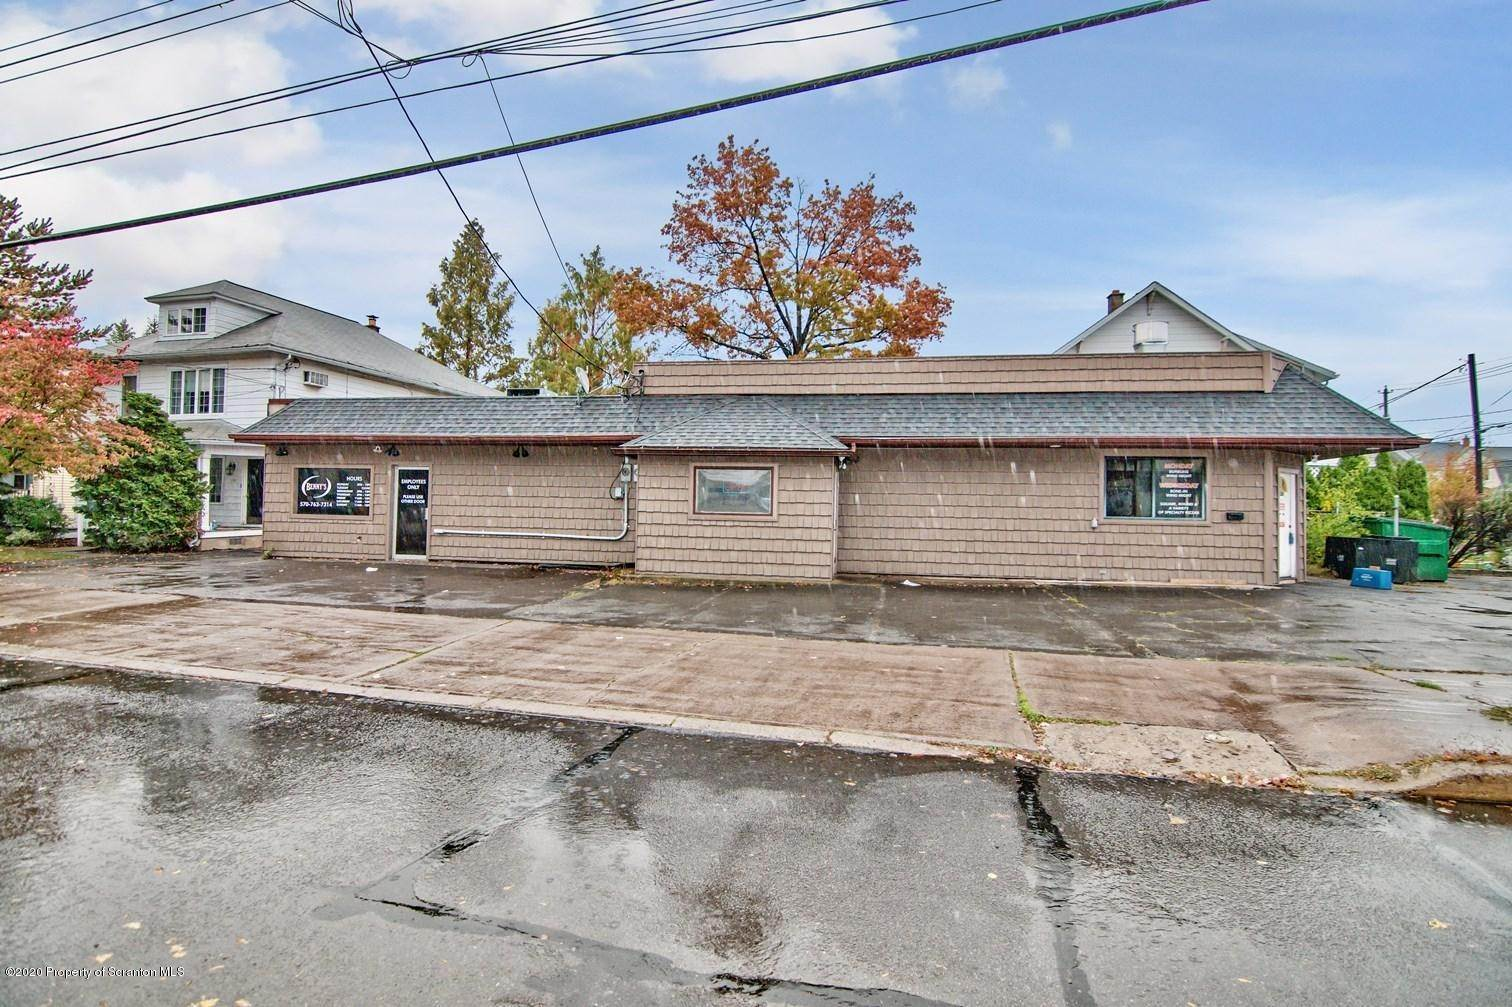 Property for Sale at 91 Shoemaker St Forty Fort, Pennsylvania 18704 United States